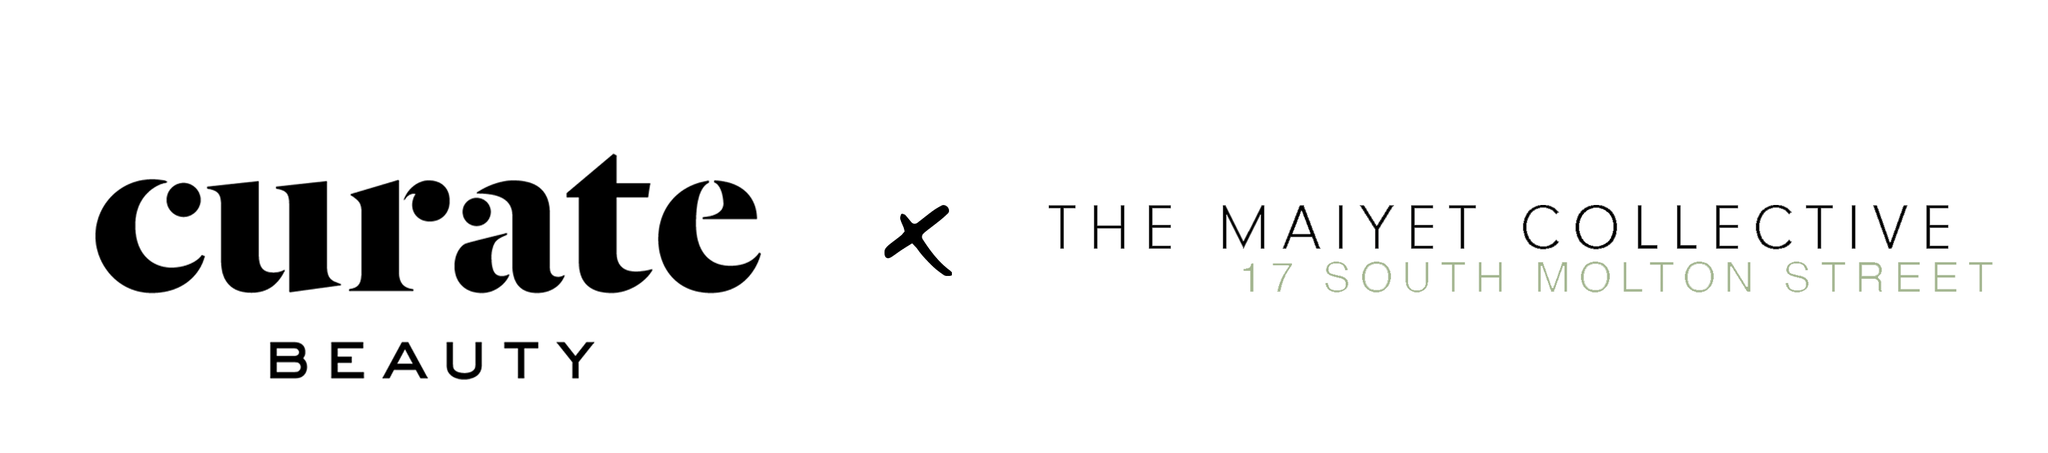 Curate Beauty x The Maiyet Collective